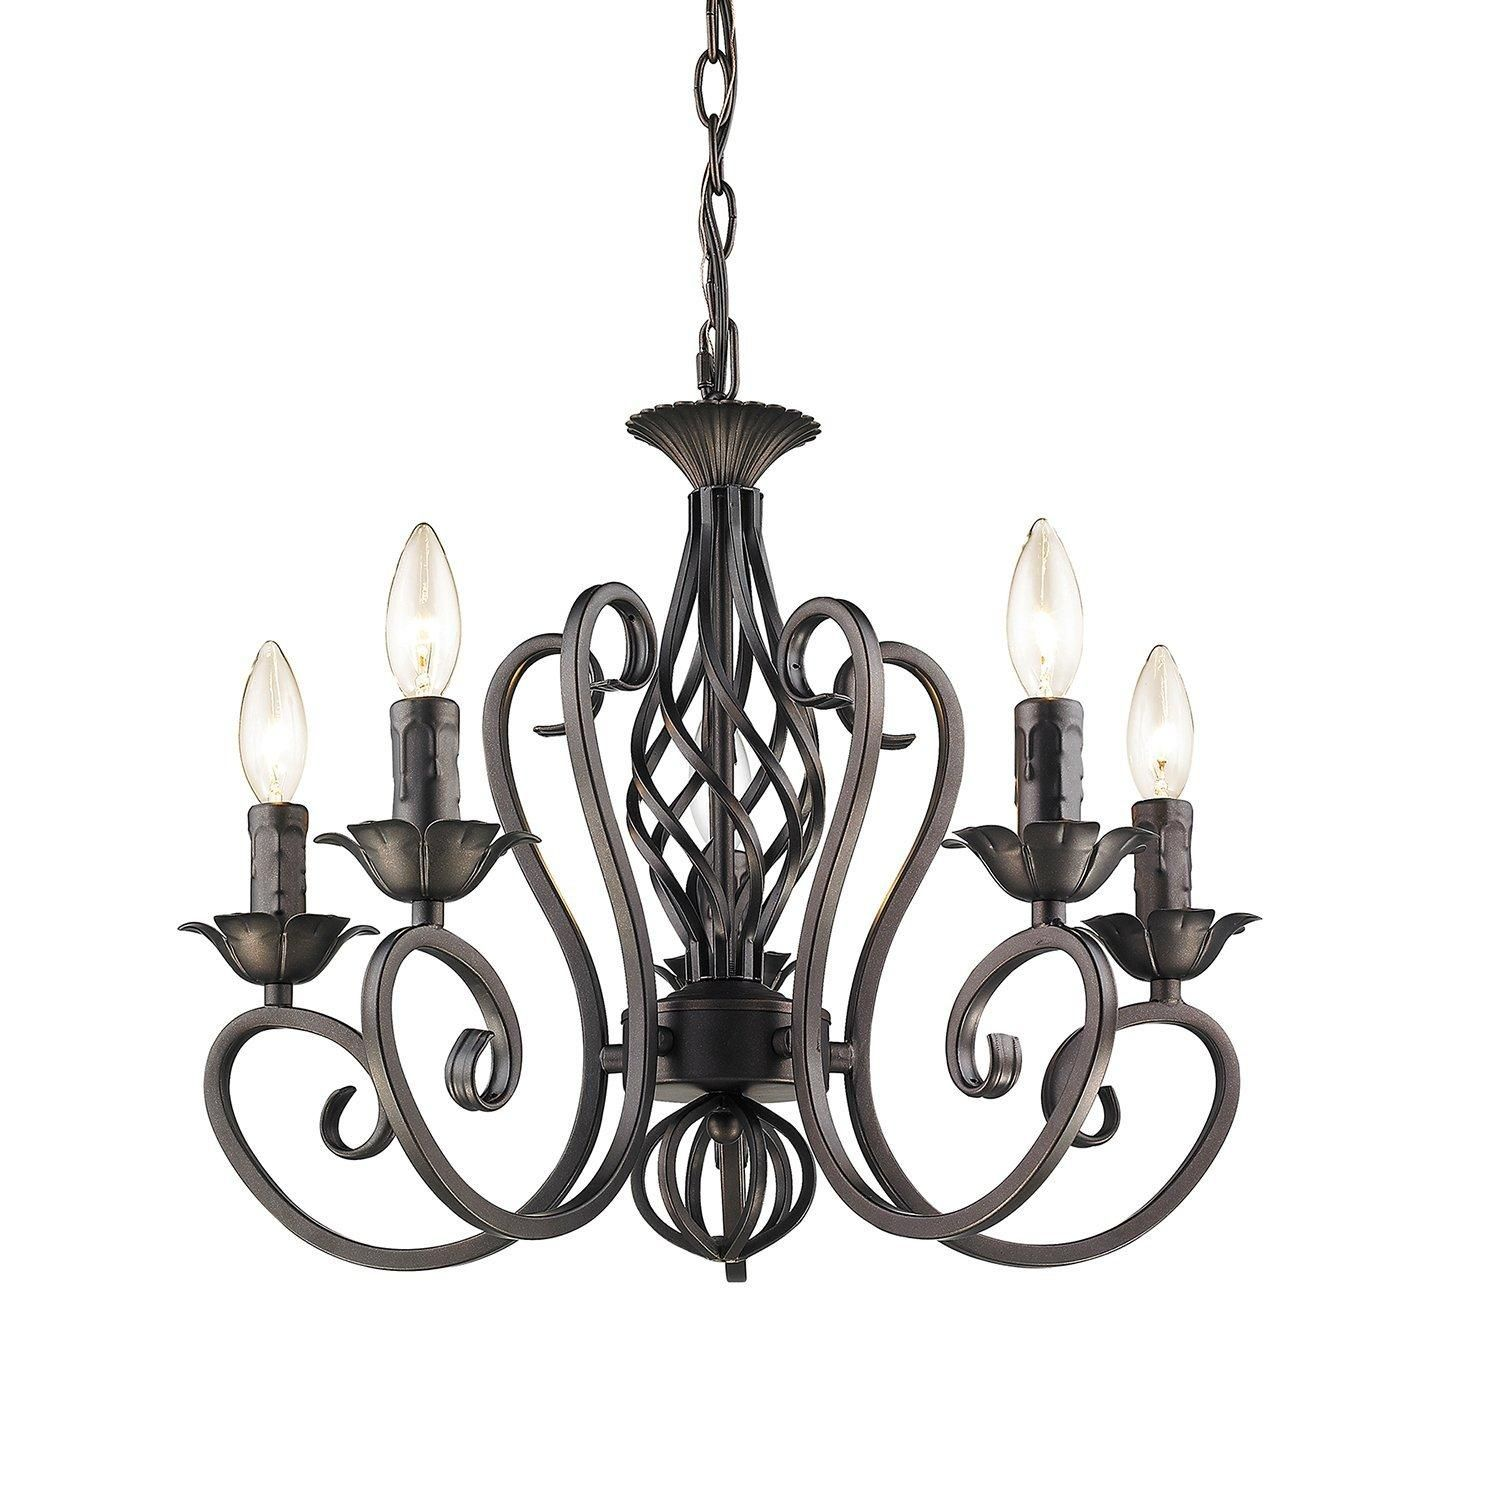 Antique Candelabra Chandeliers Wrought Iron 5 lights candle